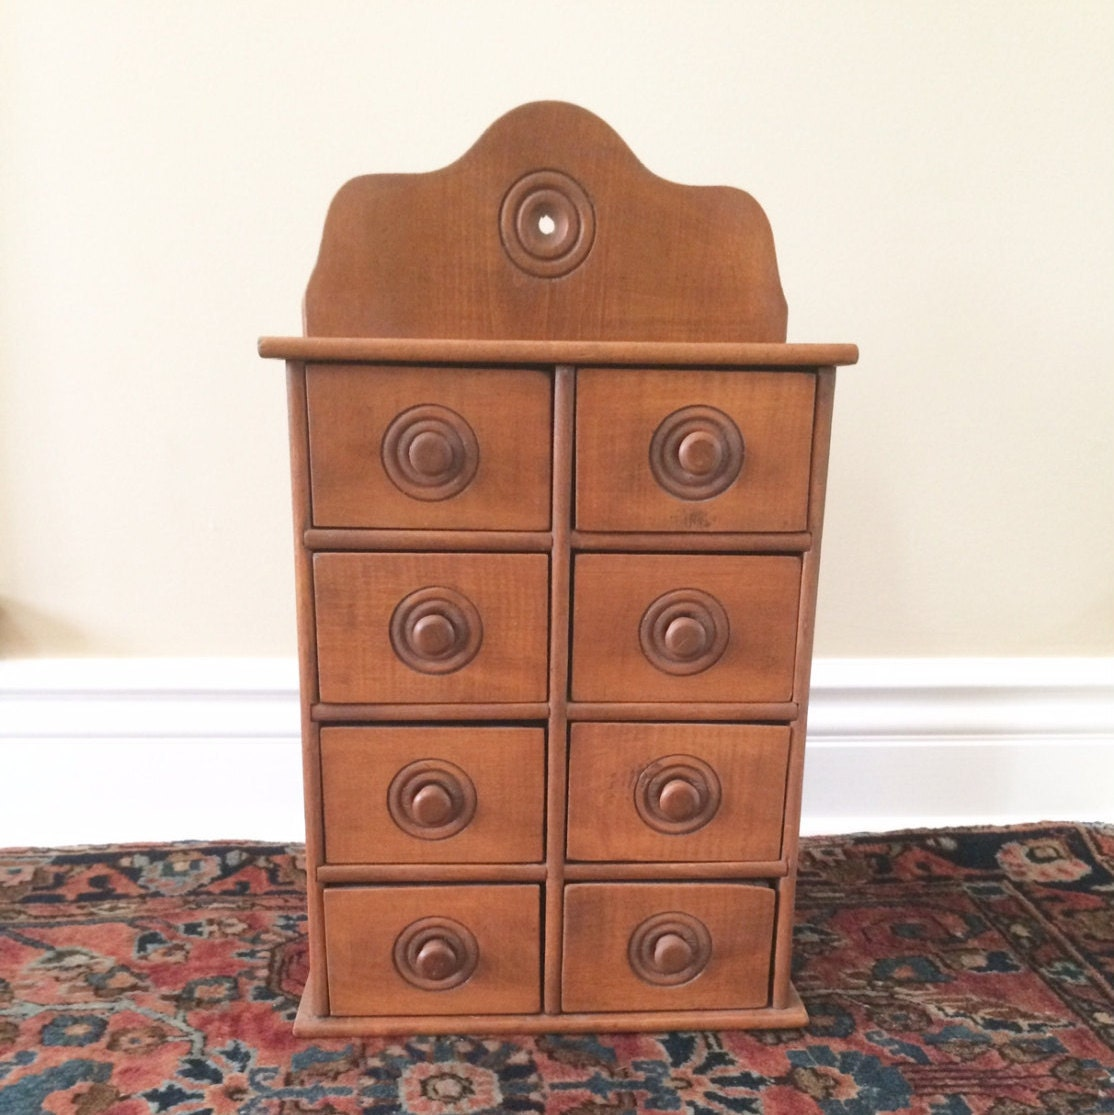 Antique Wood Spice Drawers Vintage Spice Cabinet By